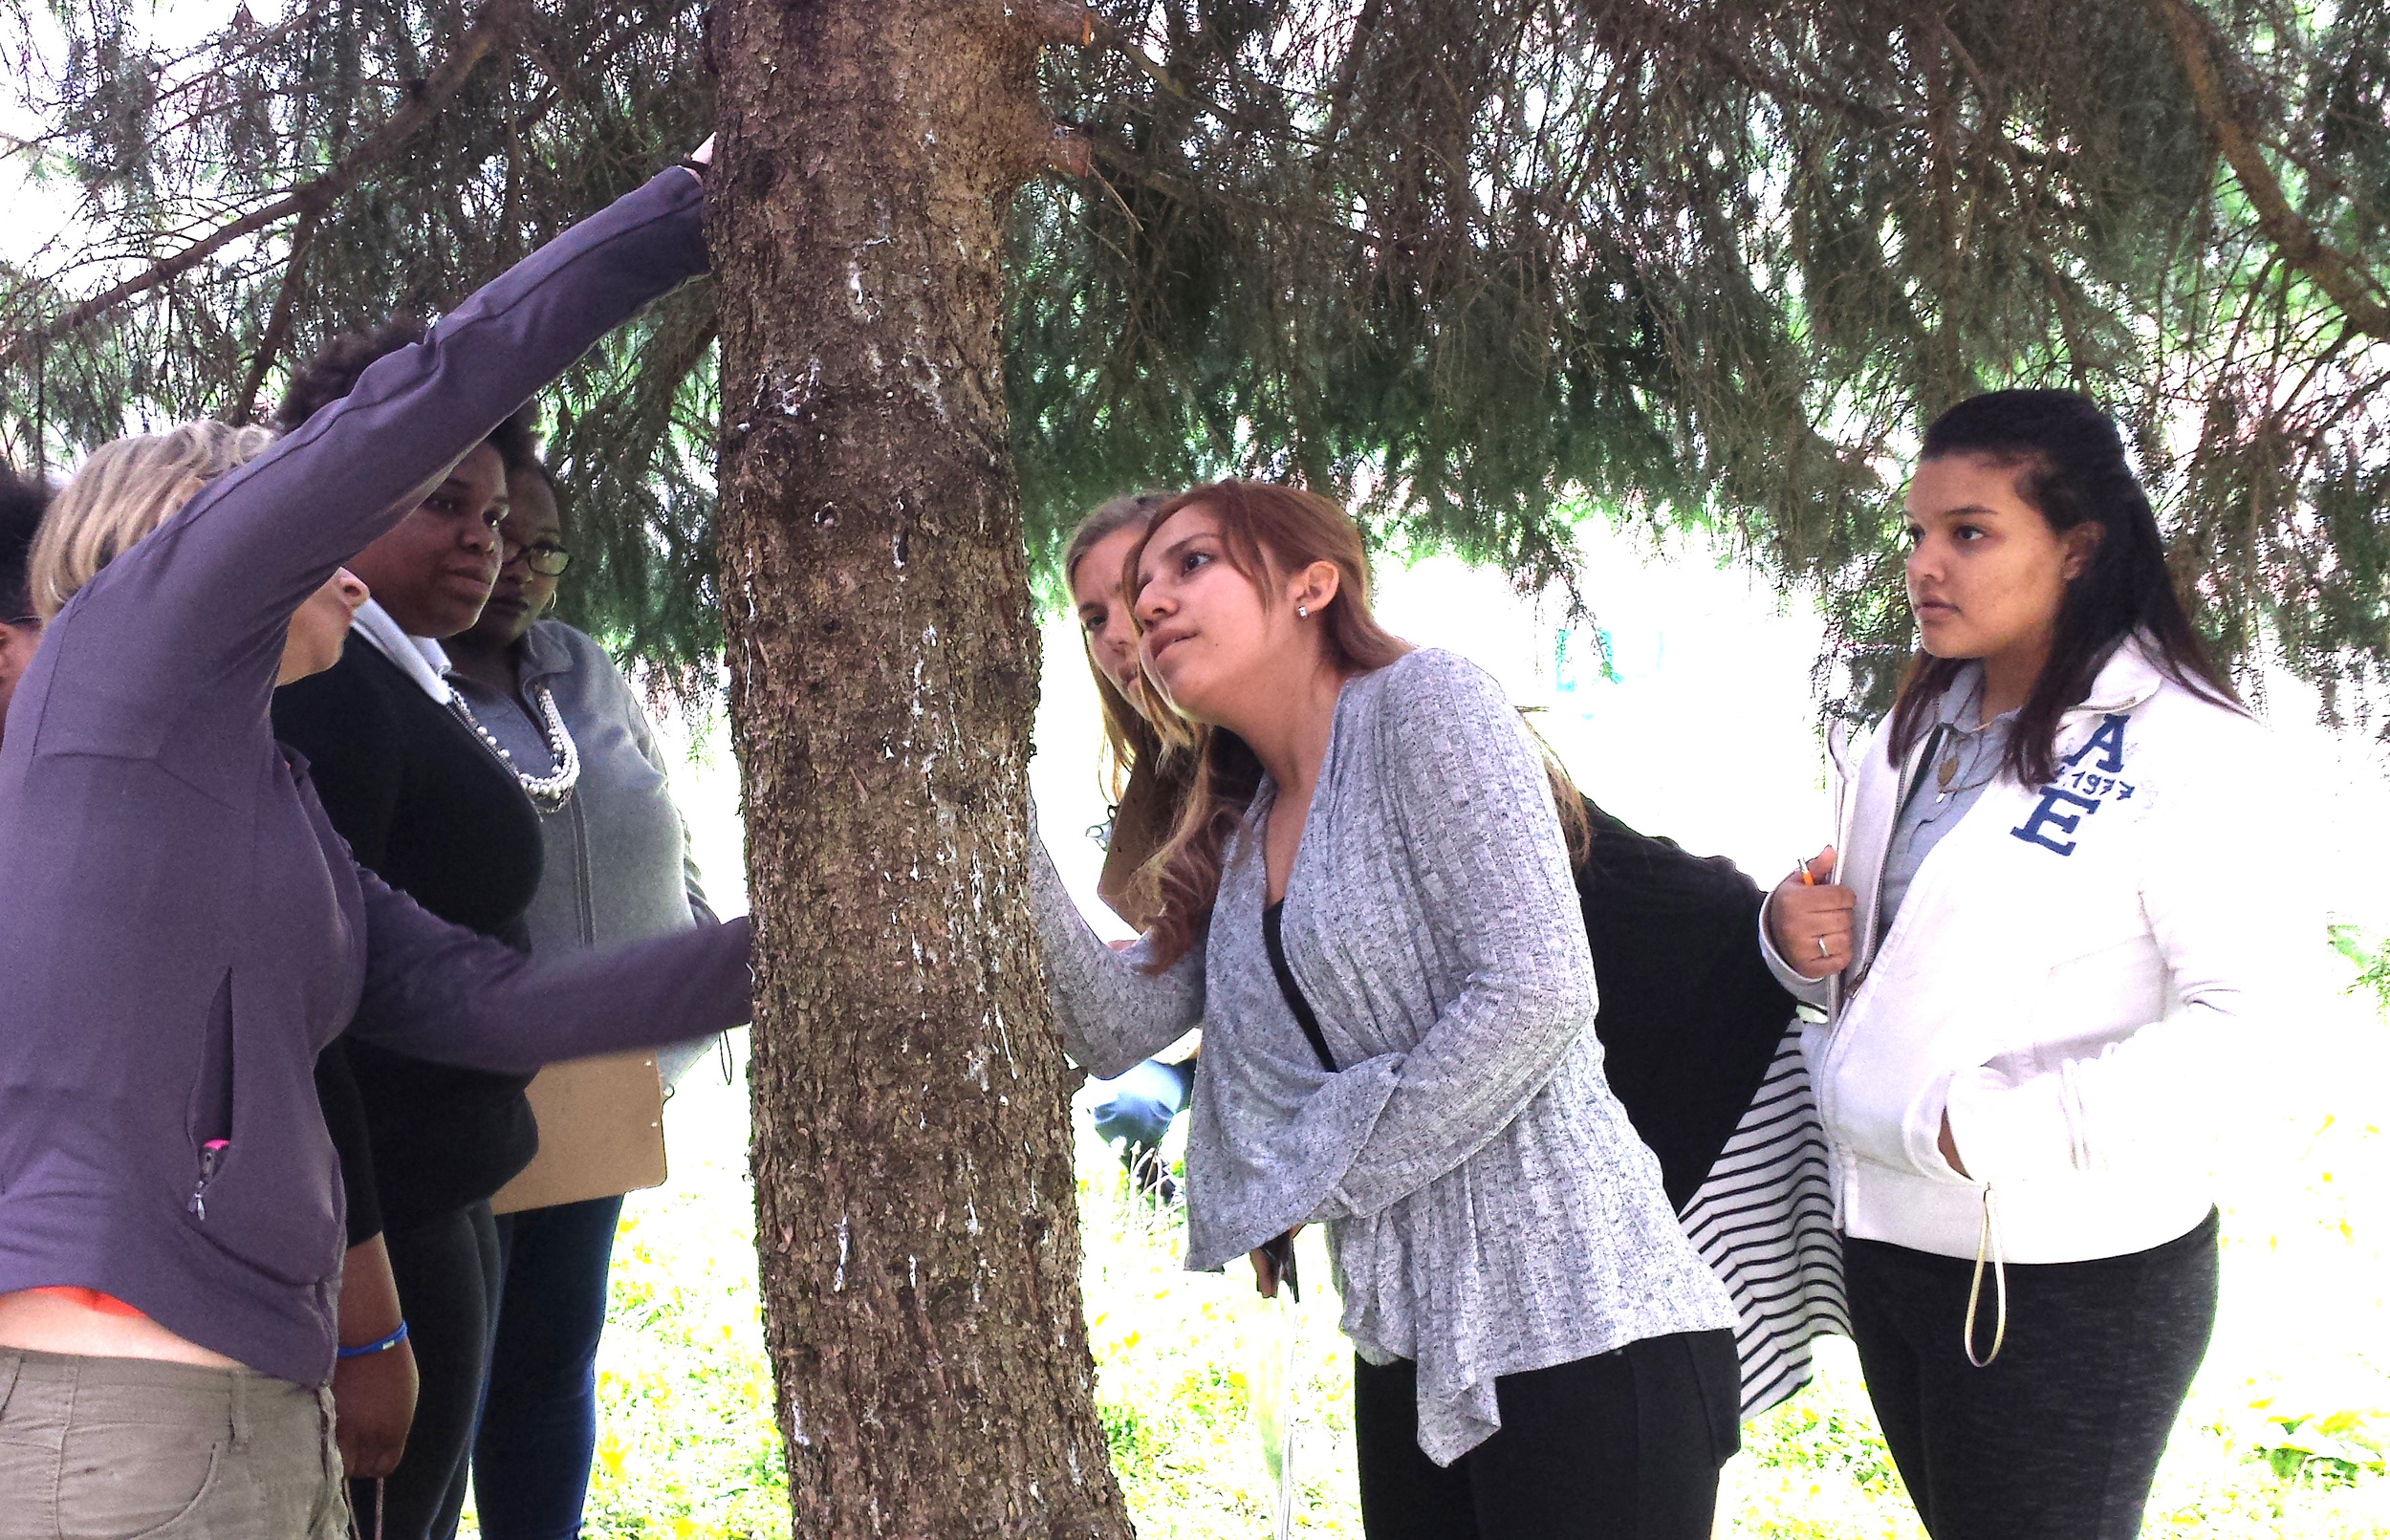 In May, 2016, Shortridge High School students dug in the on the Climate Recovery project, researching various aspects of the initiative. Here, Holly Jones (left) from the Indiana Urban Forest Council helps students understand how trees can be measured to assess carbon sequestration.